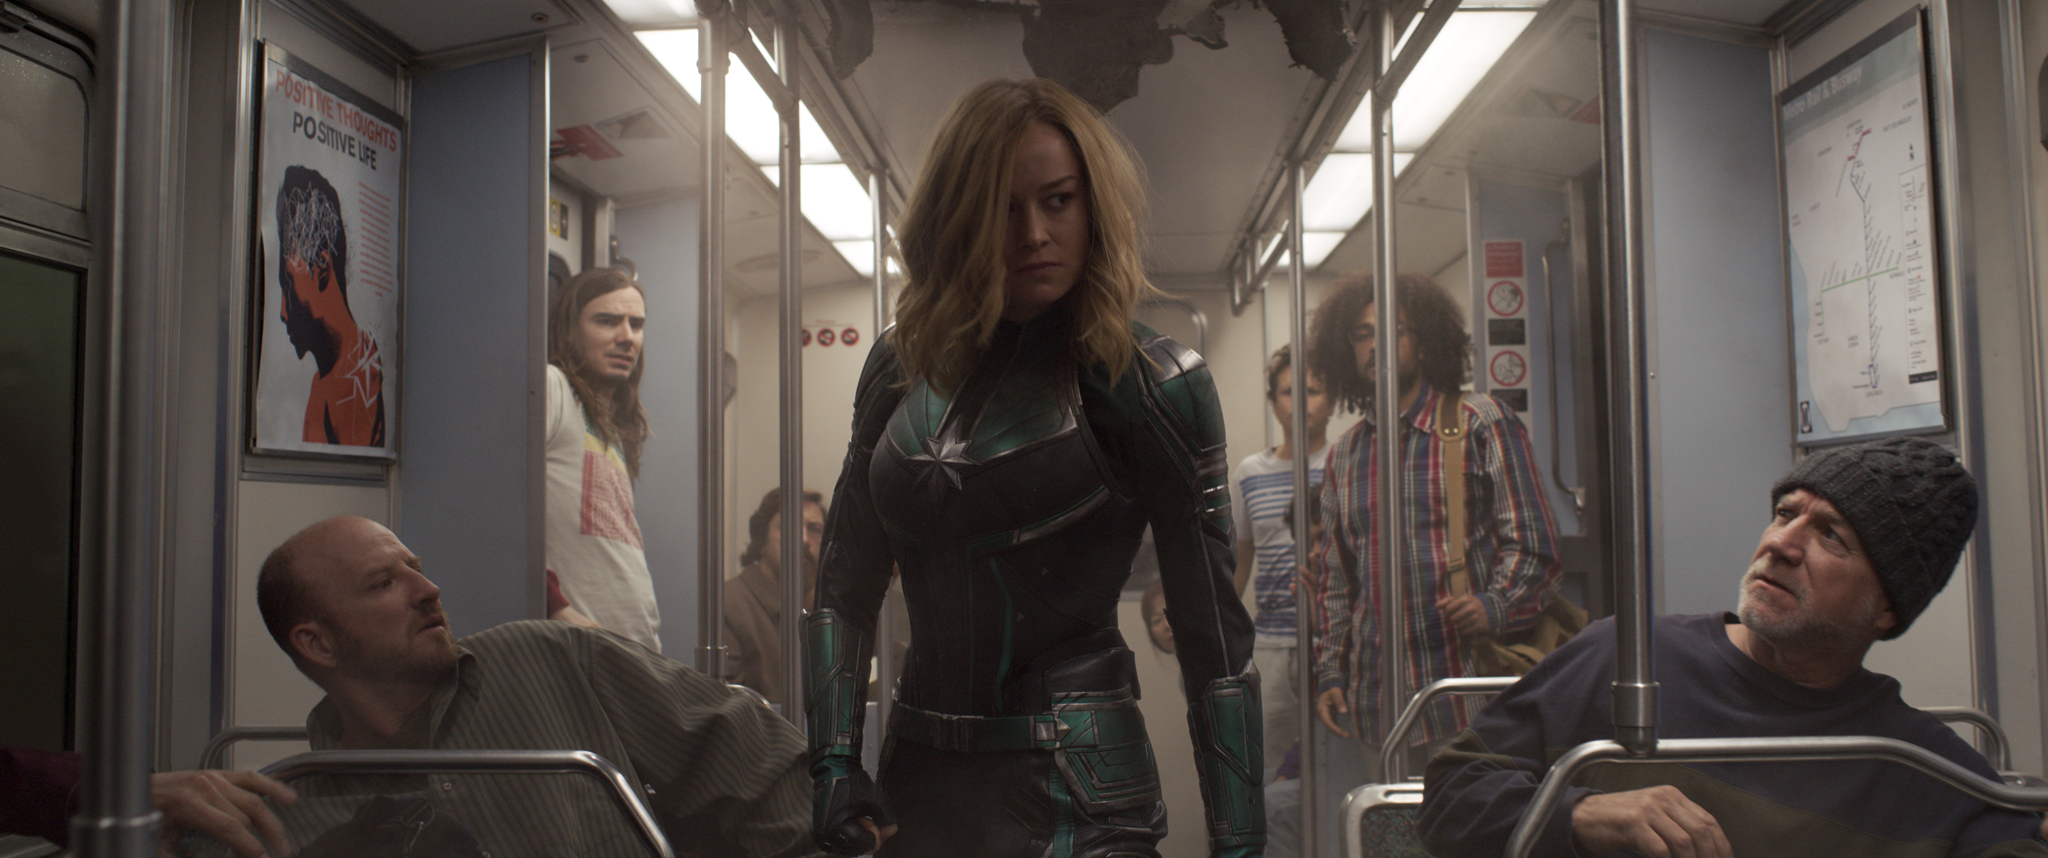 CaptainMarvel-Dec2018Stills-07.jpg